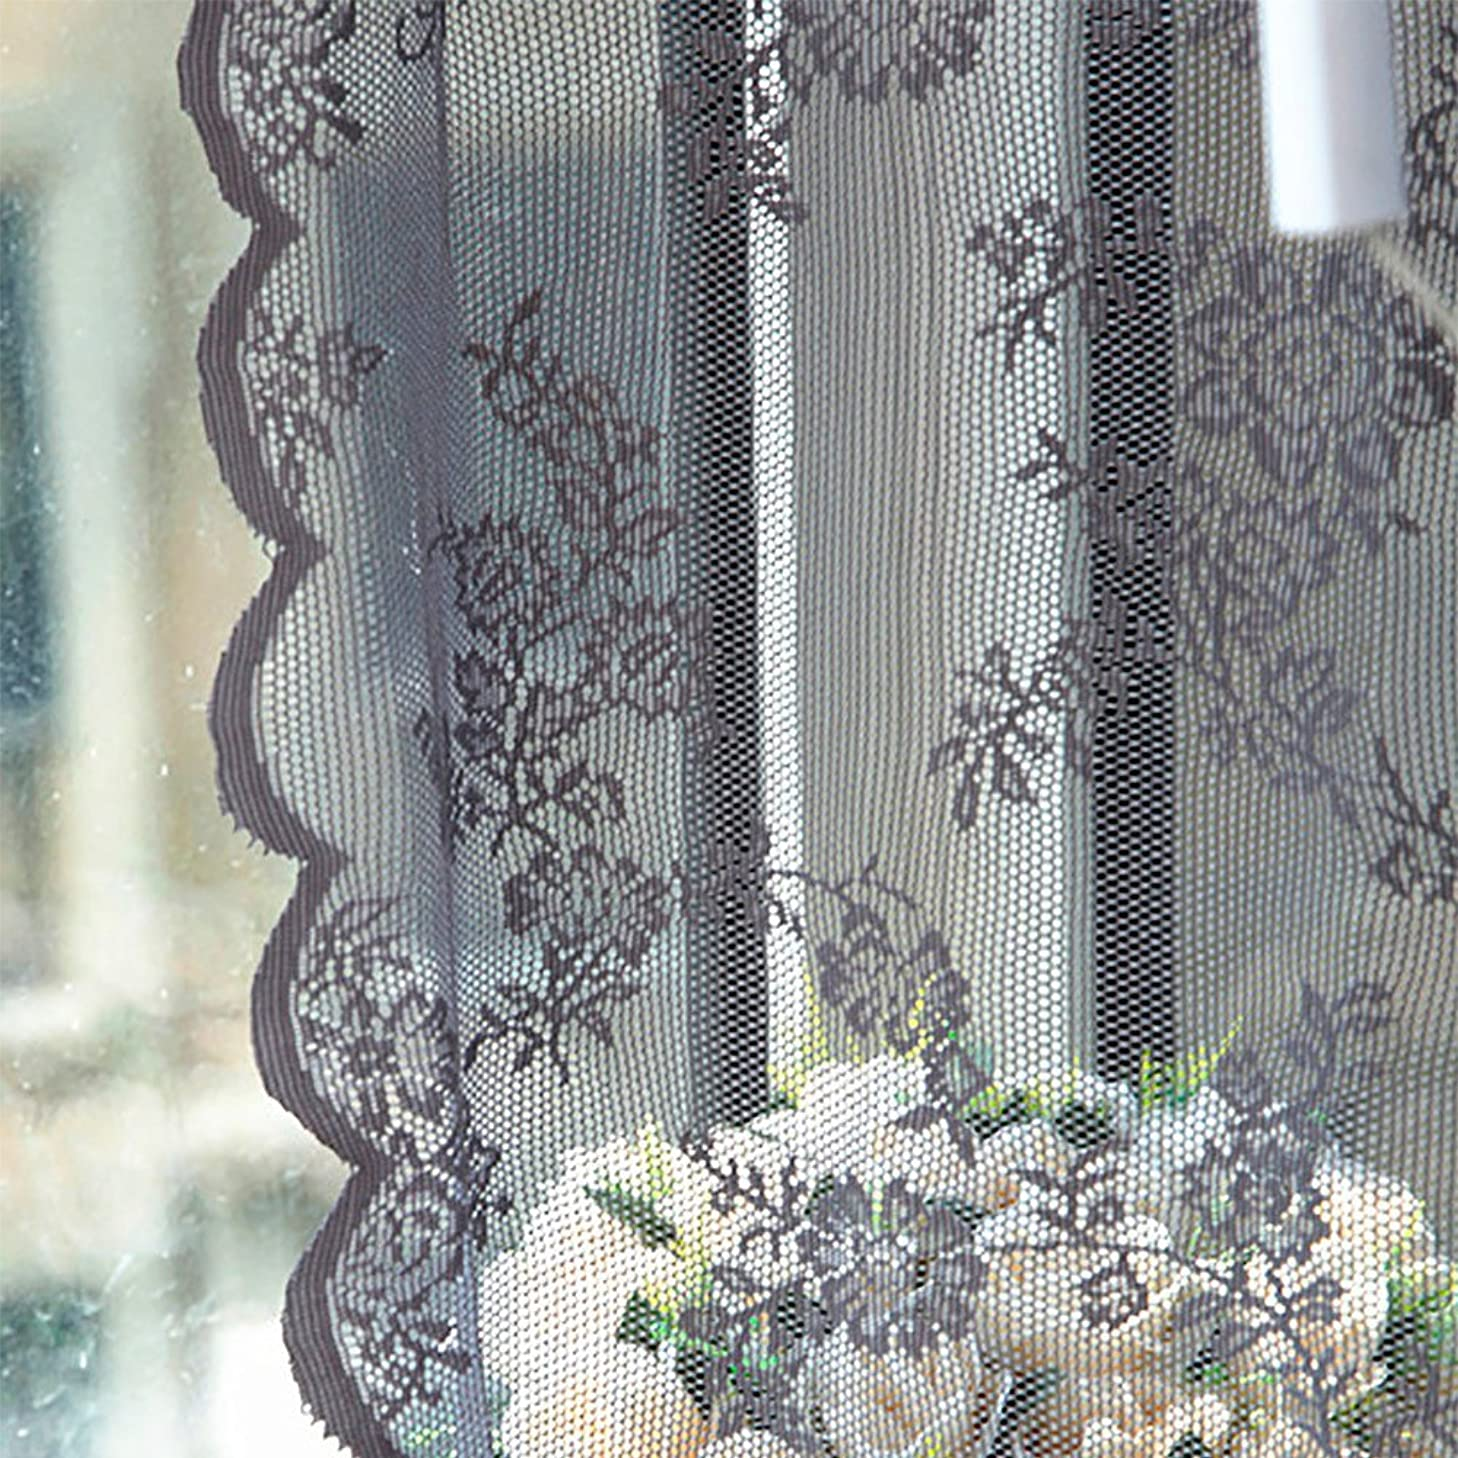 Jieou Sheer Curtain Tulle Window Lace/Crochet Trim Treatment Voile Drape Valance Wide Tailored Window Panel, Ruffle Edge, Rod Pocket (Gray, 180cm x 145cm)